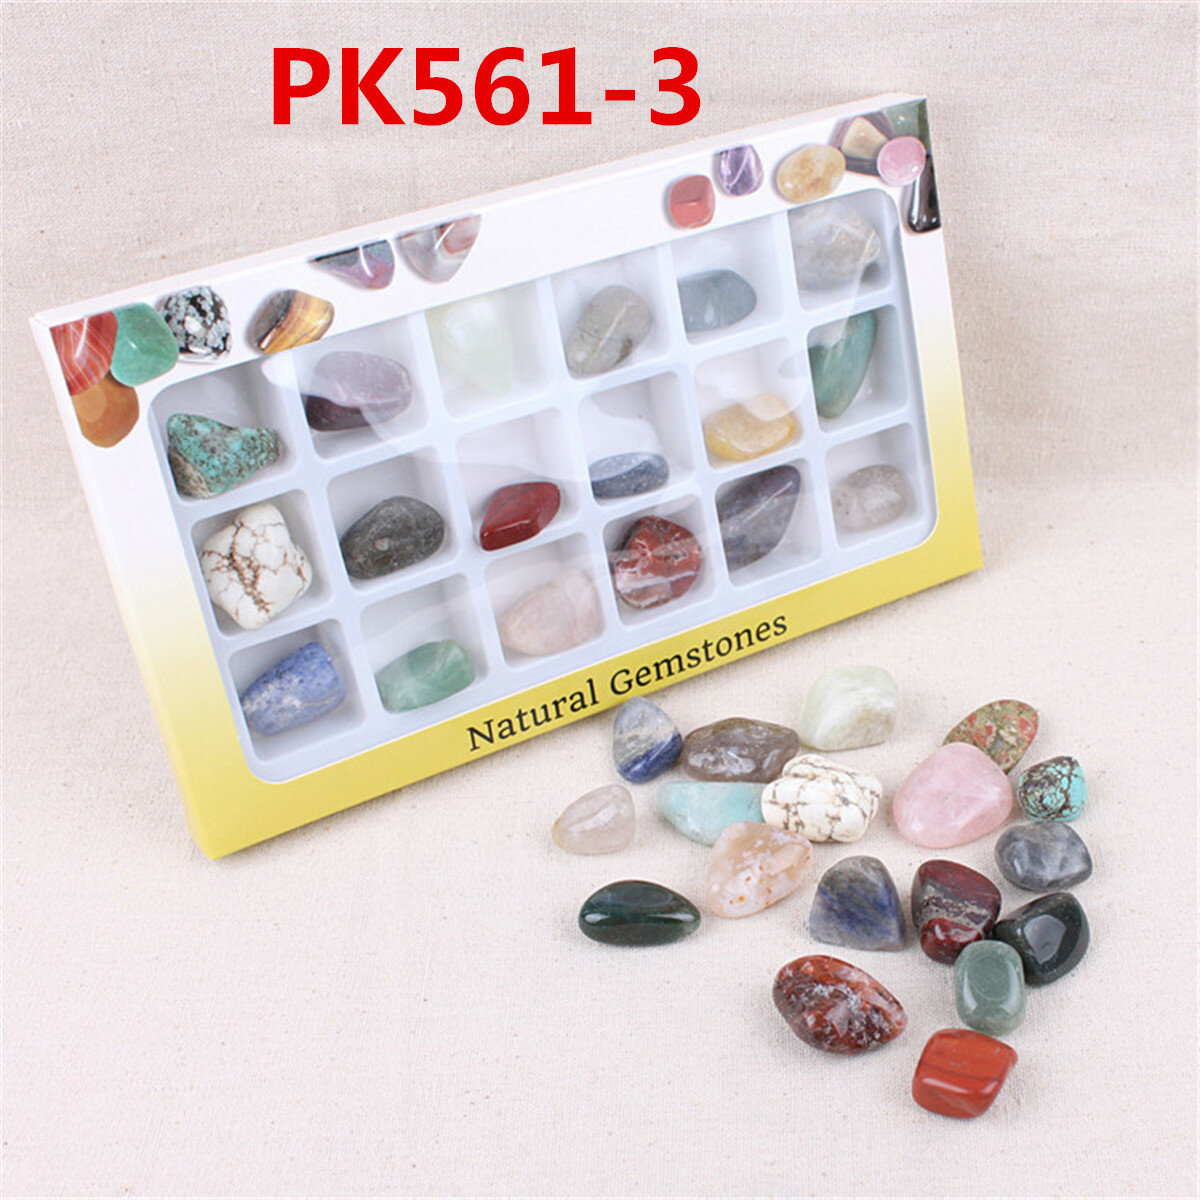 AU Natural Gemstones Stones Variety Collection Crystals Kit Mineral Geological Teaching Materials фото